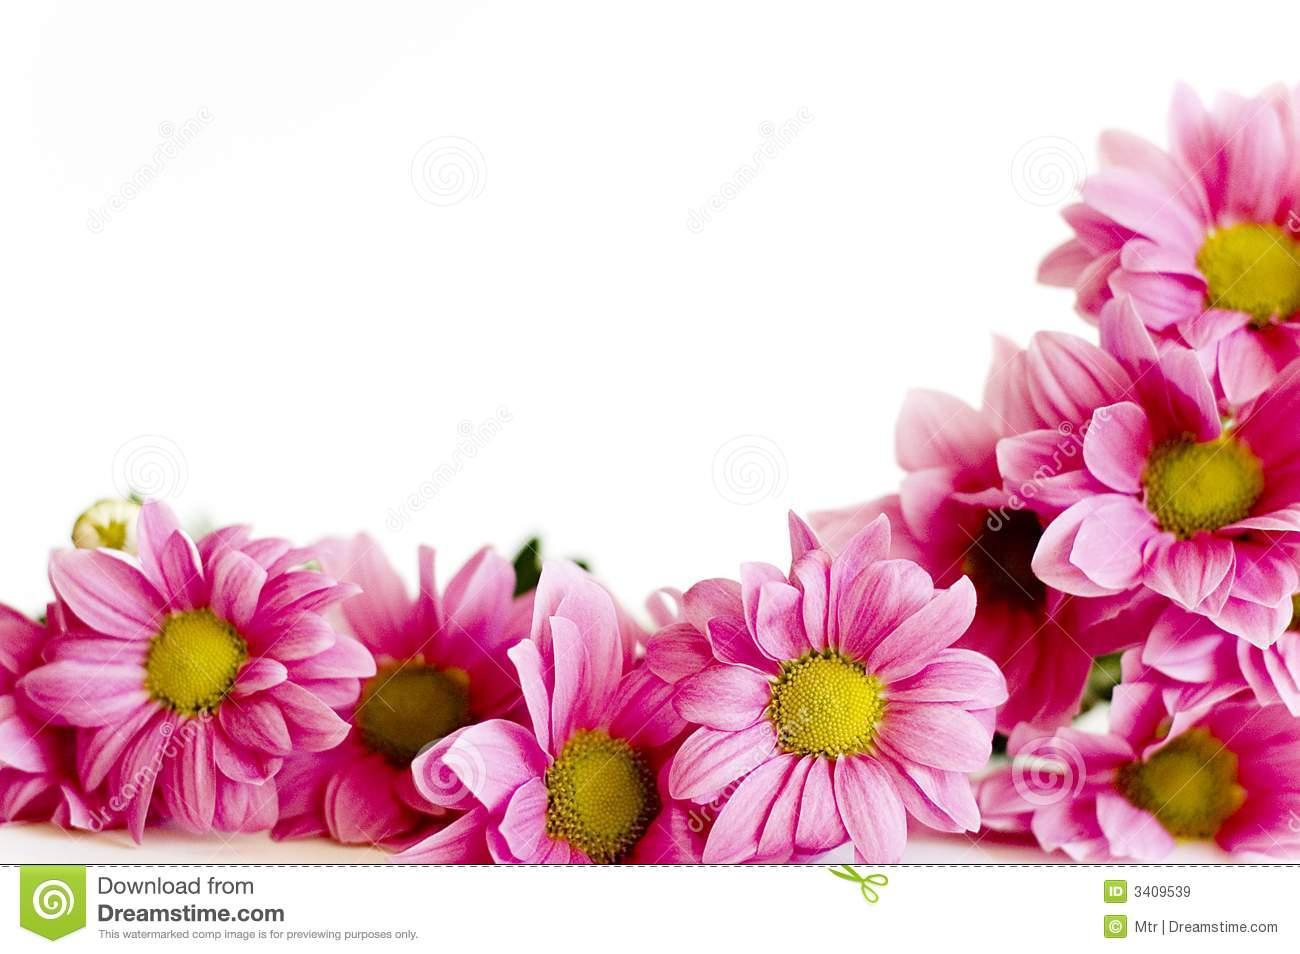 Pink Daisy Flowers Pink Daisy Flowers Preview White U Pink Daisy